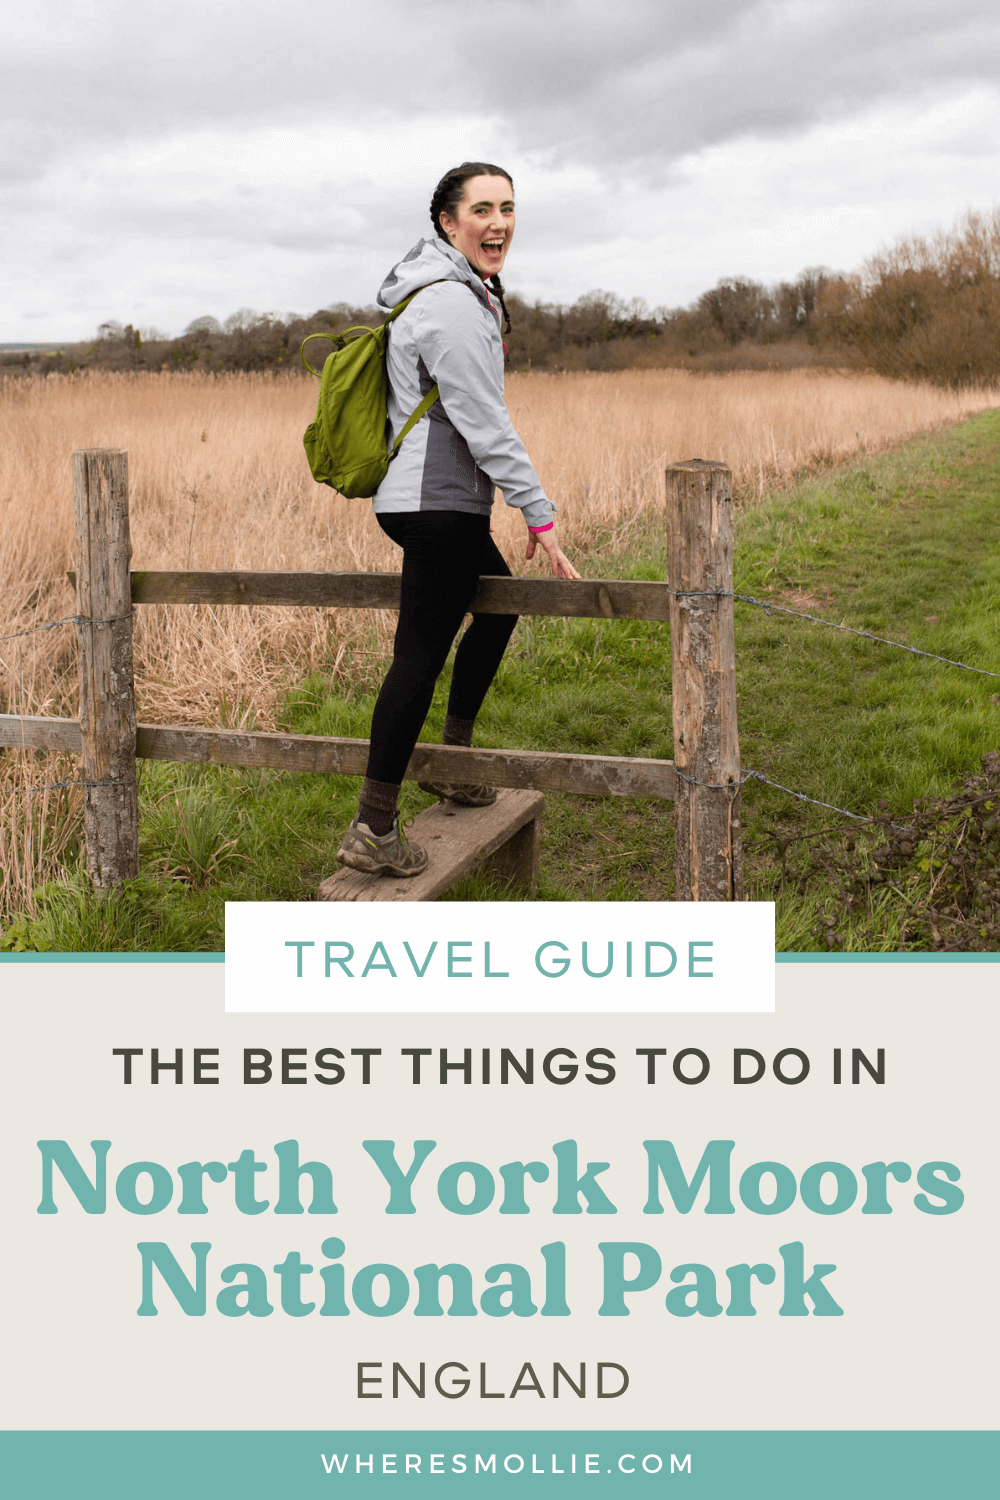 A complete guide to North York Moors National Park, England